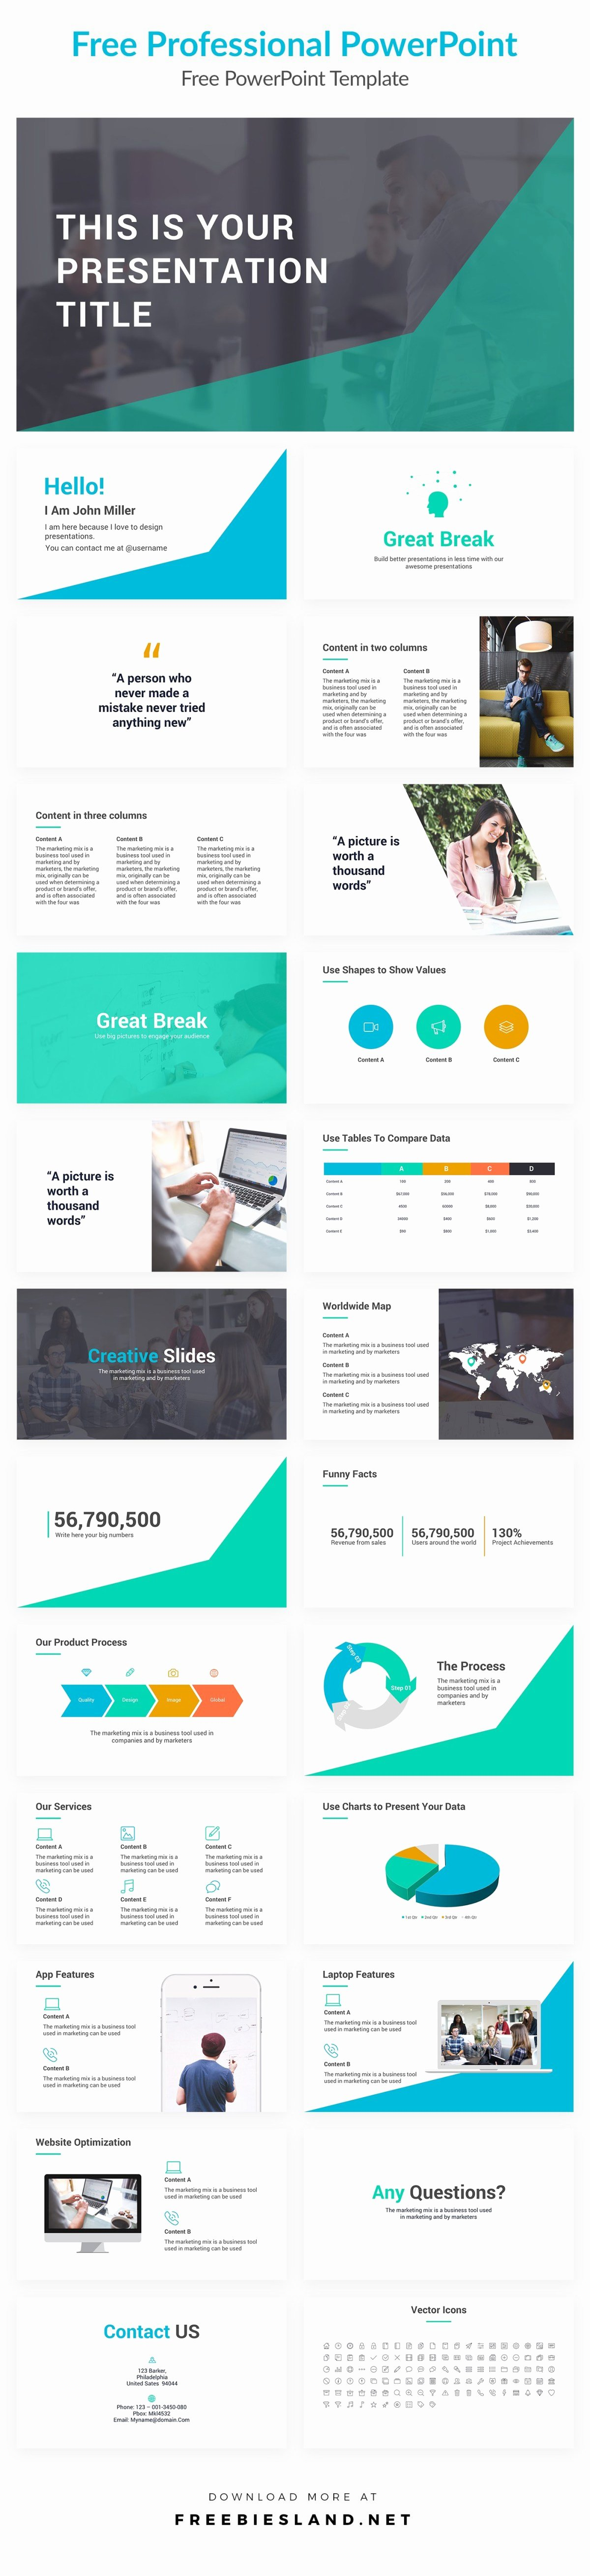 Free Professional Powerpoint Presentation Template Pptx Ppt